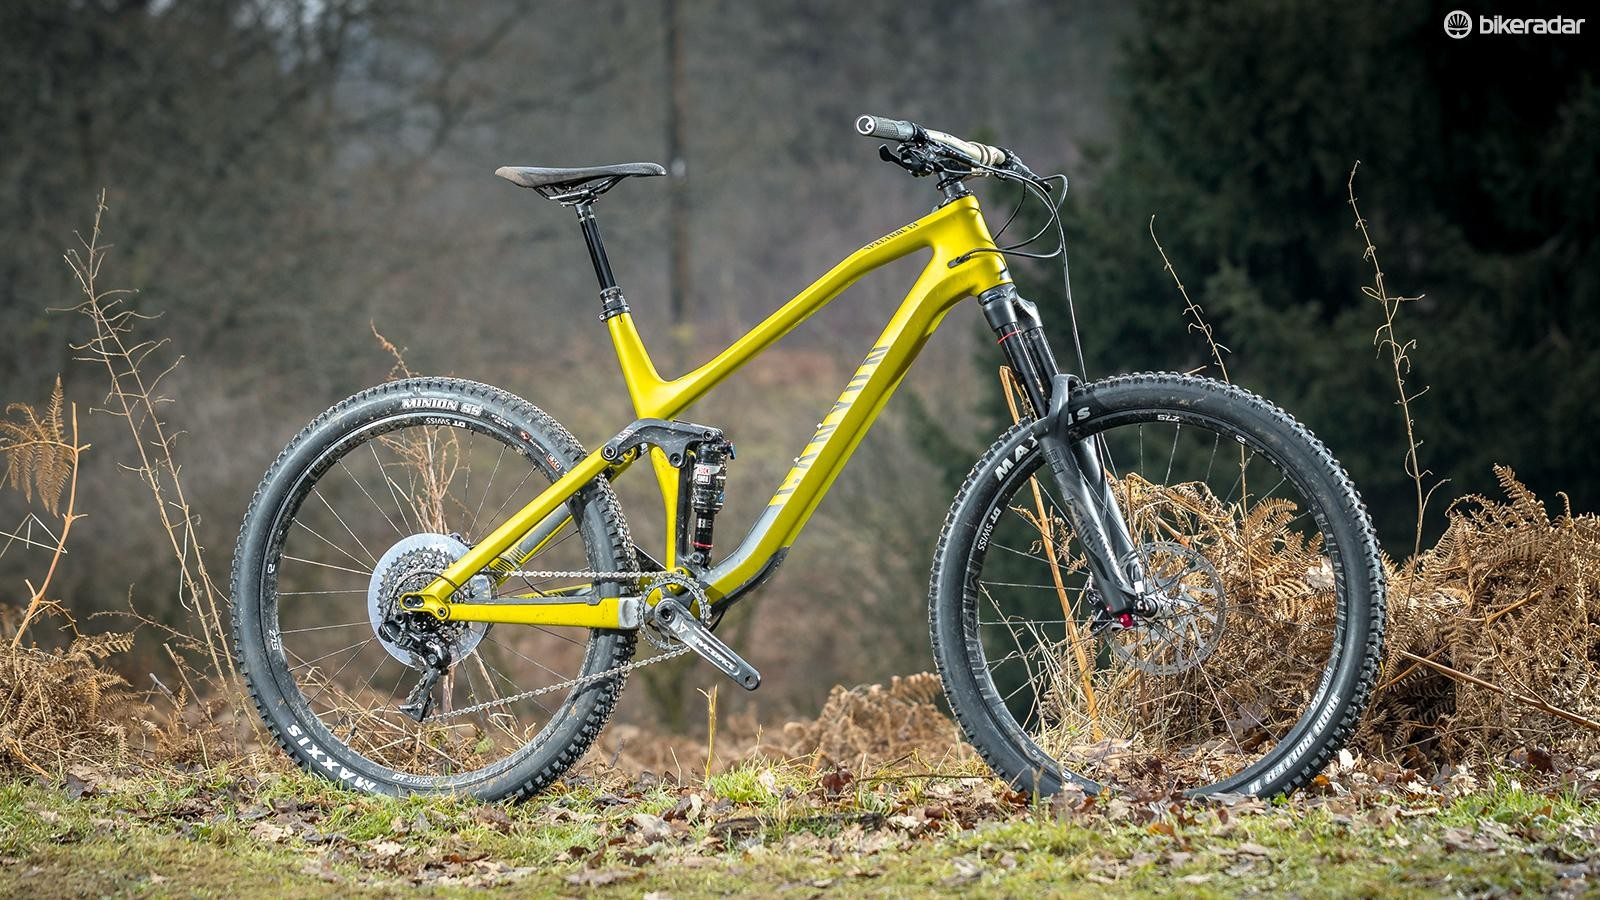 Canyon's Spectral CF 8.0 EX